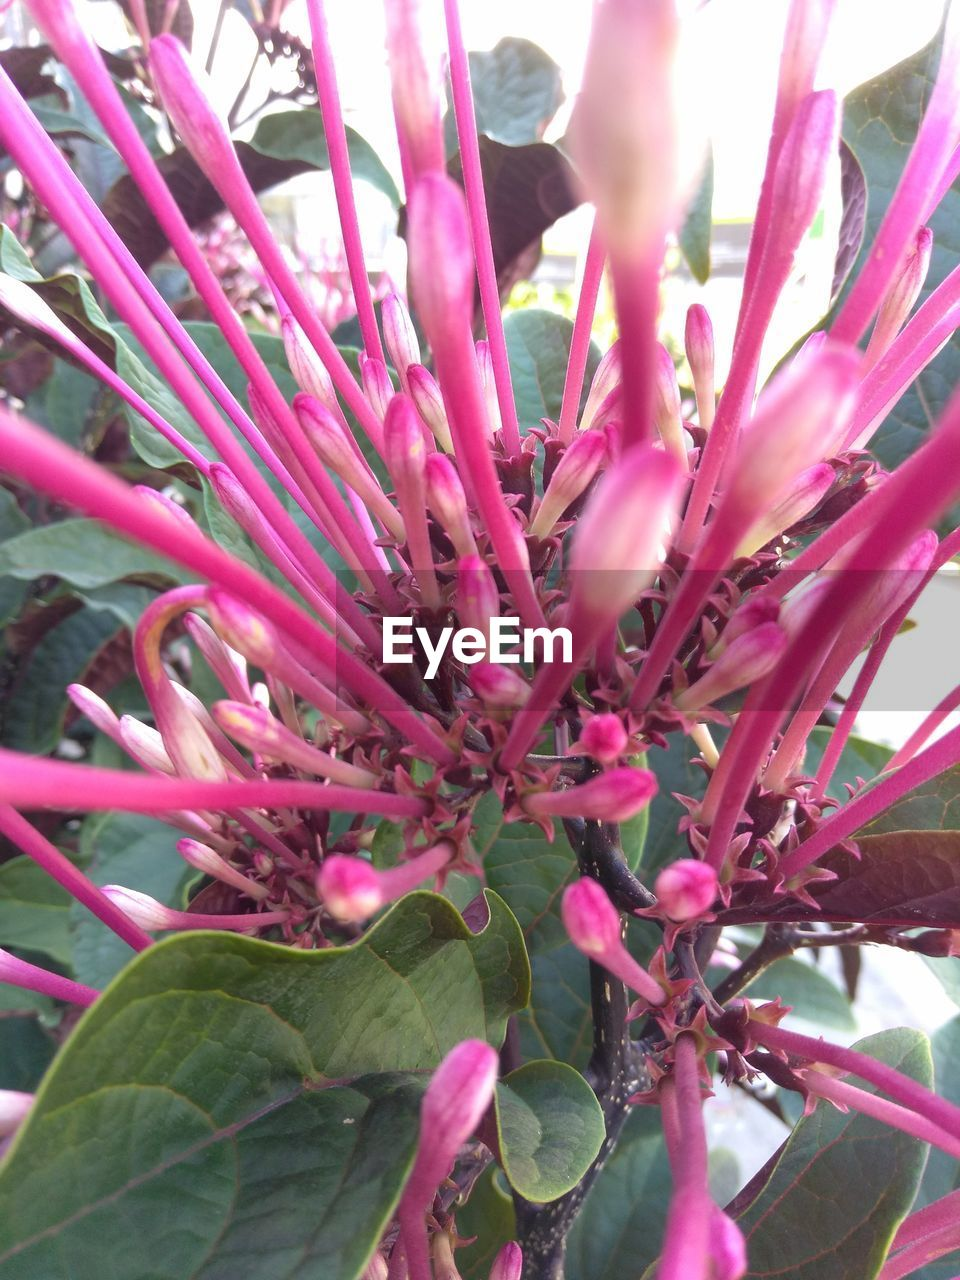 growth, flower, beauty in nature, nature, pink color, fragility, petal, freshness, plant, botany, blossom, no people, selective focus, close-up, flower head, day, outdoors, springtime, leaf, branch, blooming, tree